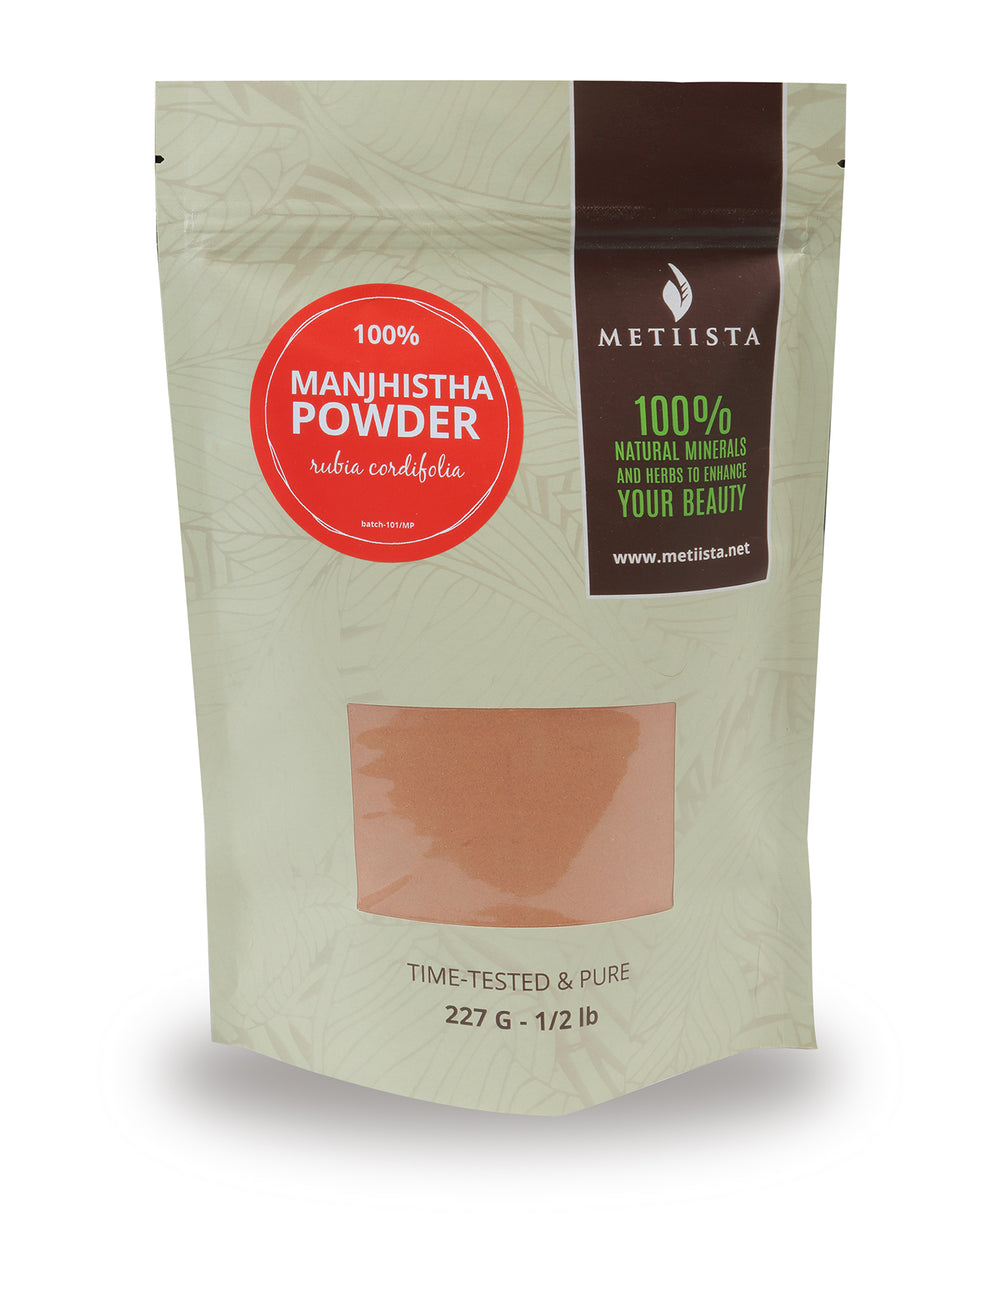 Manjhistha Powder